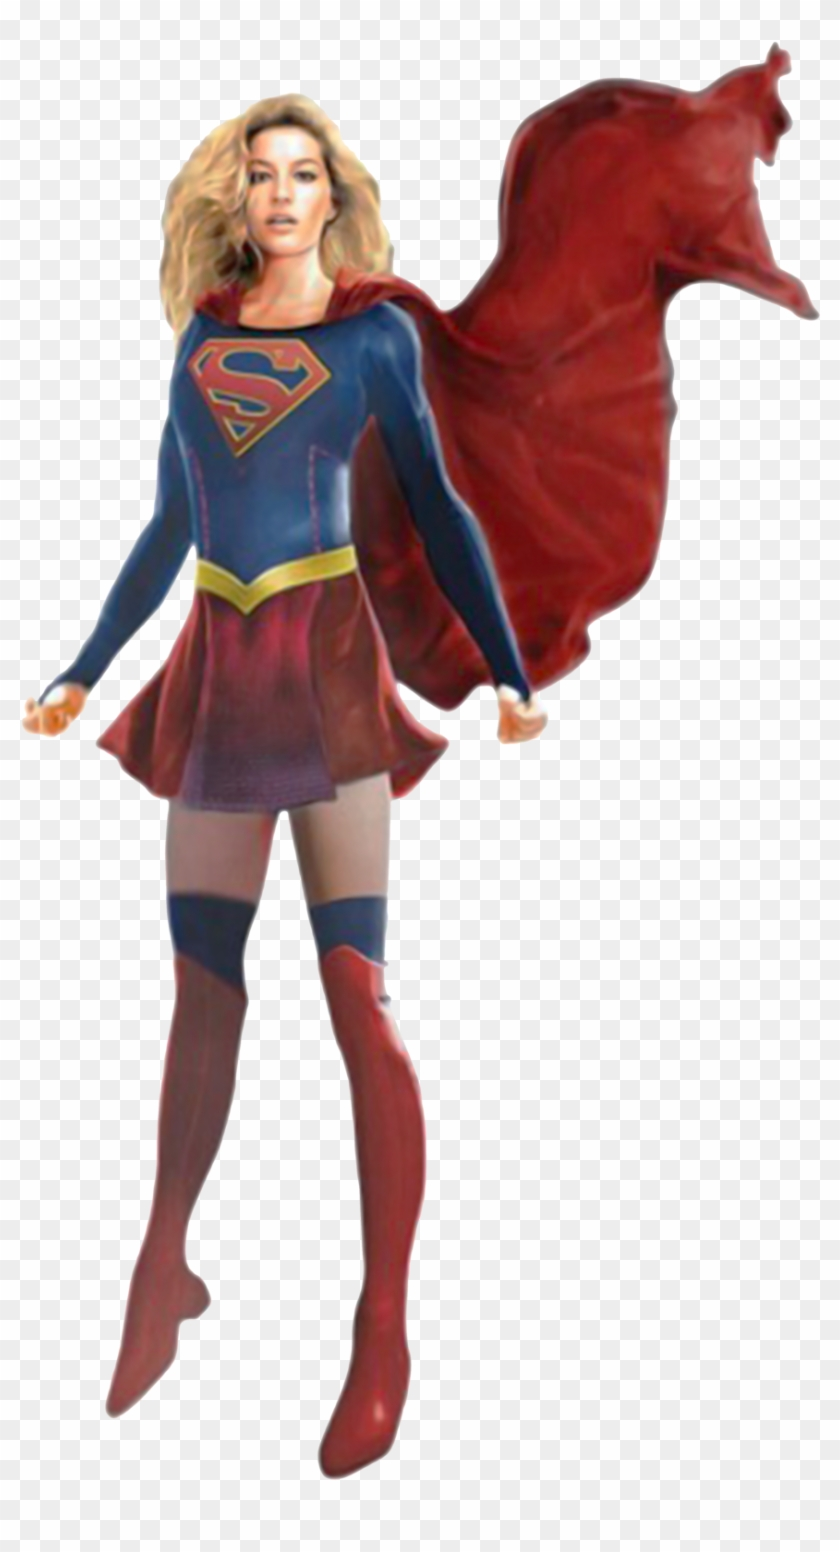 Official Supergirl Concept Art By Trickarrowdesigns - Supergirl Costume Adult #291130